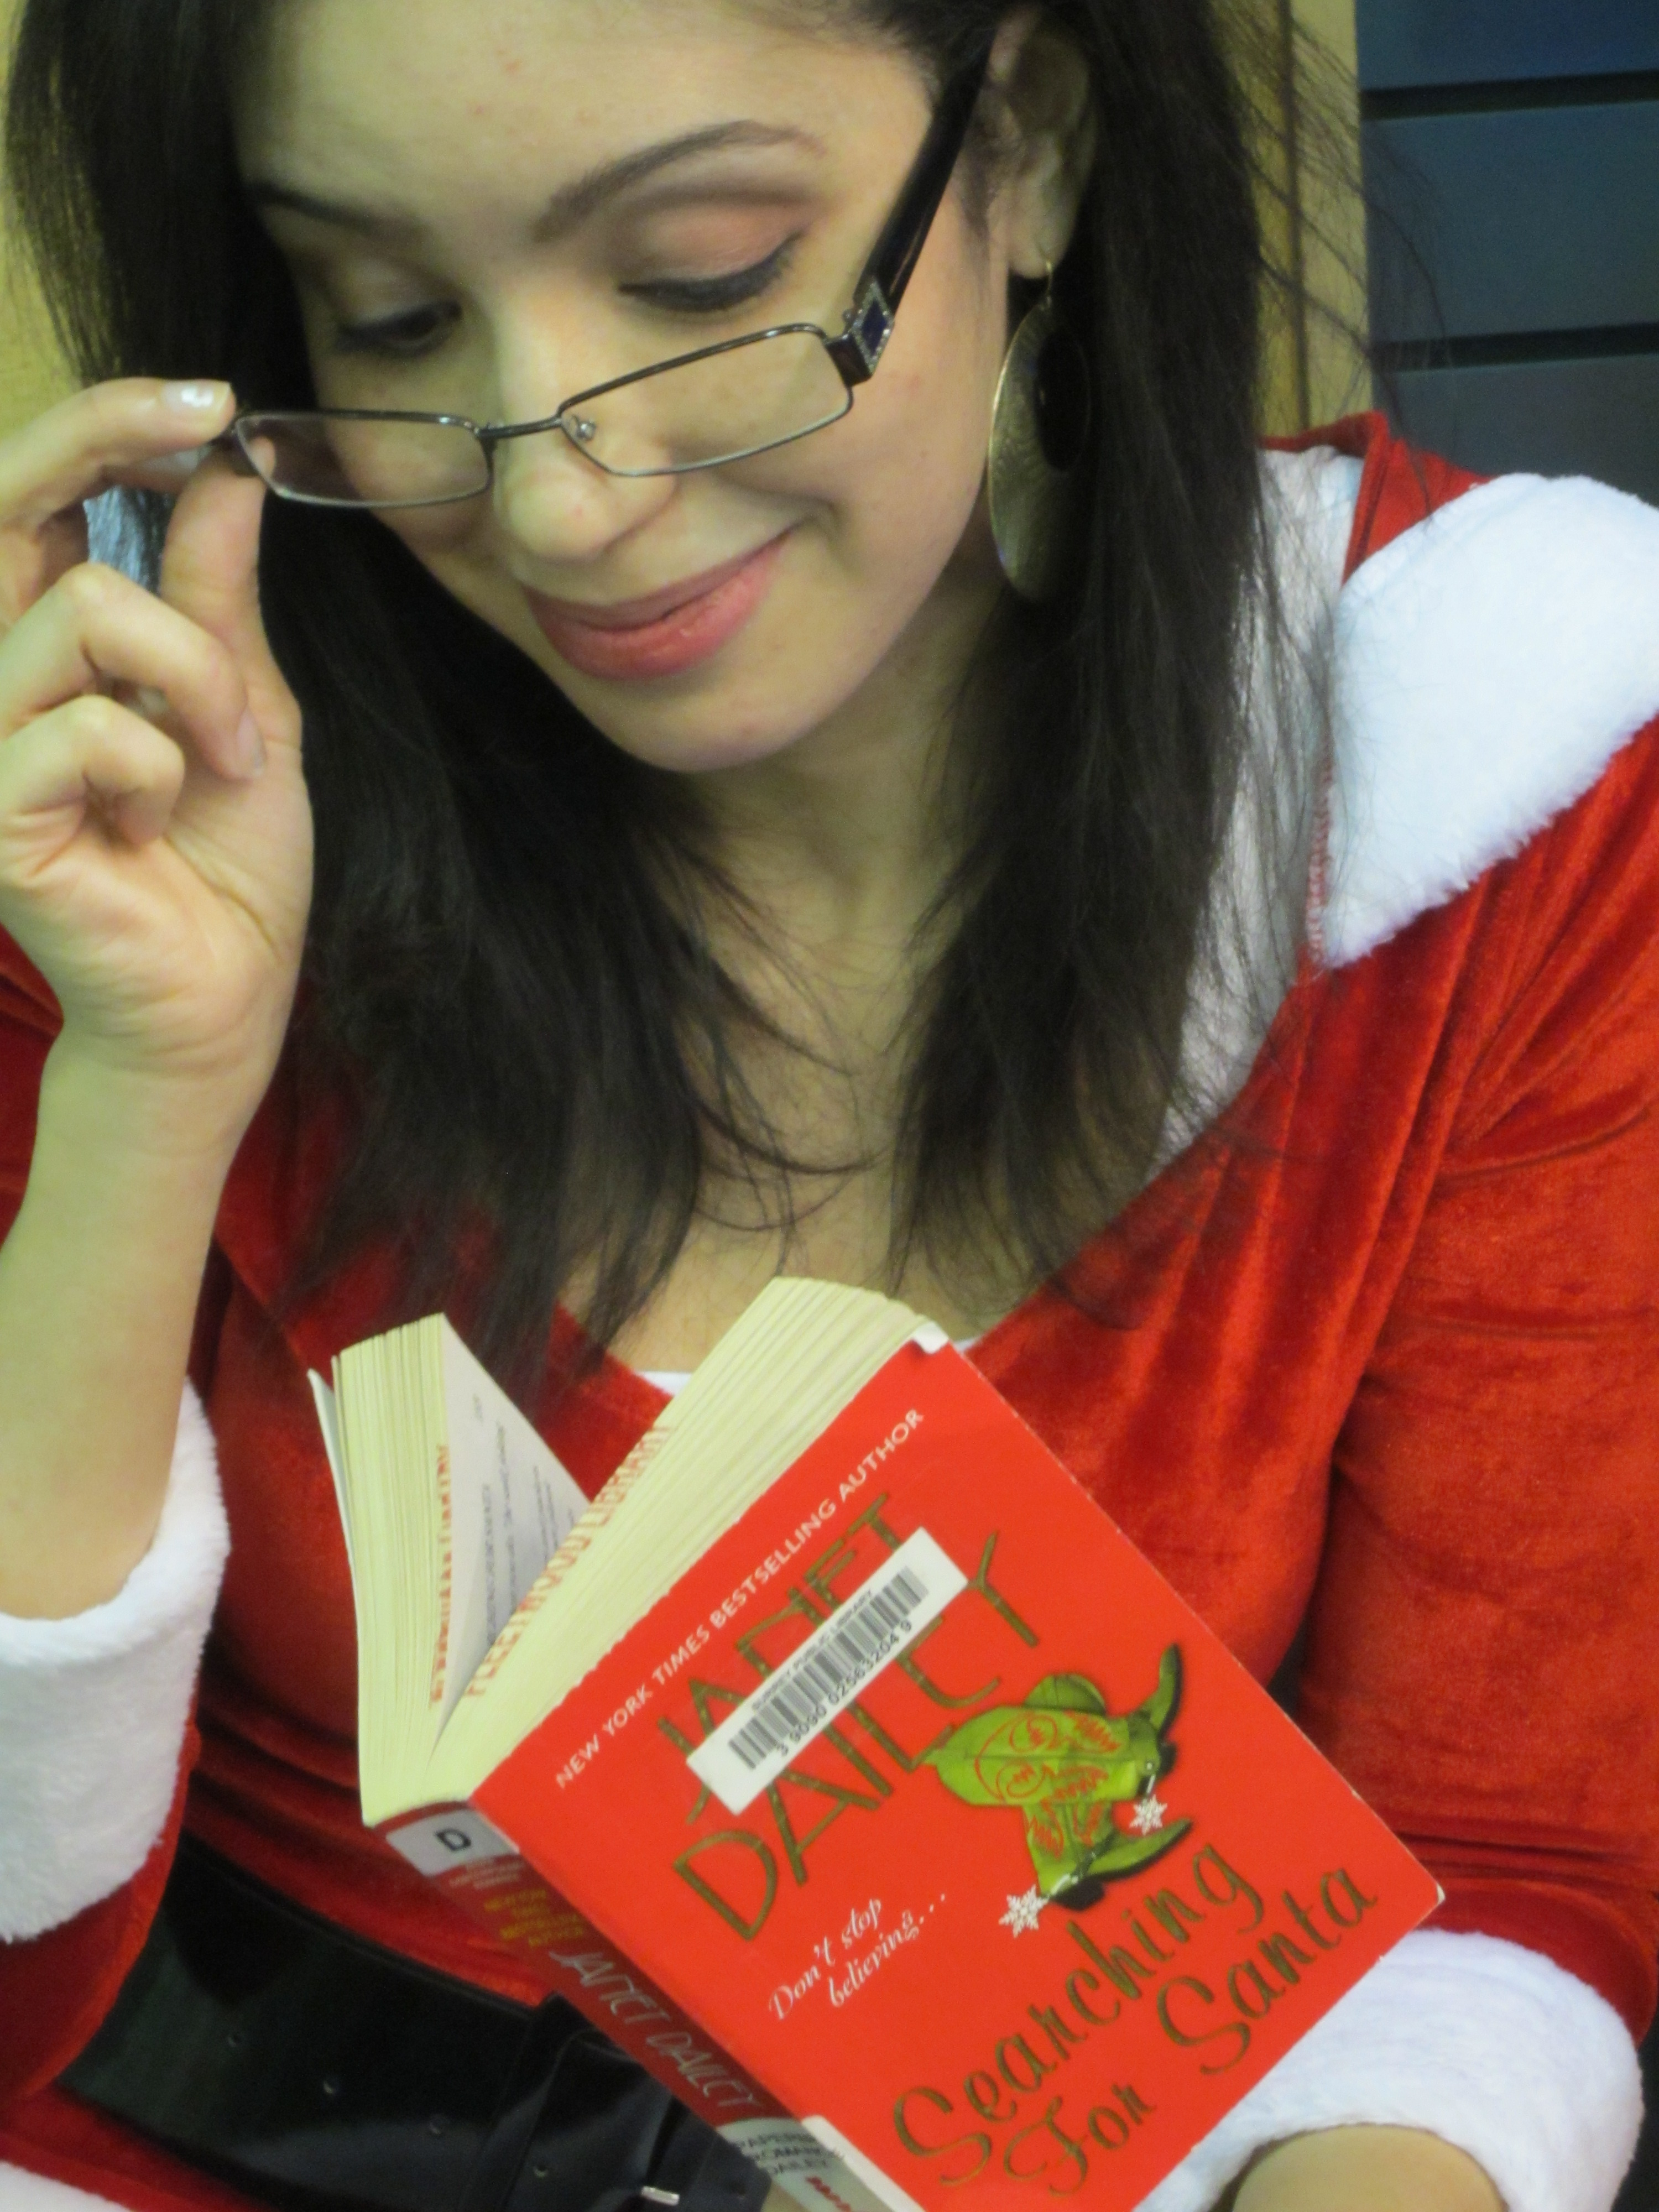 Michelle is enjoying Searching for Santa by Janet Dailey. - michelle_image1